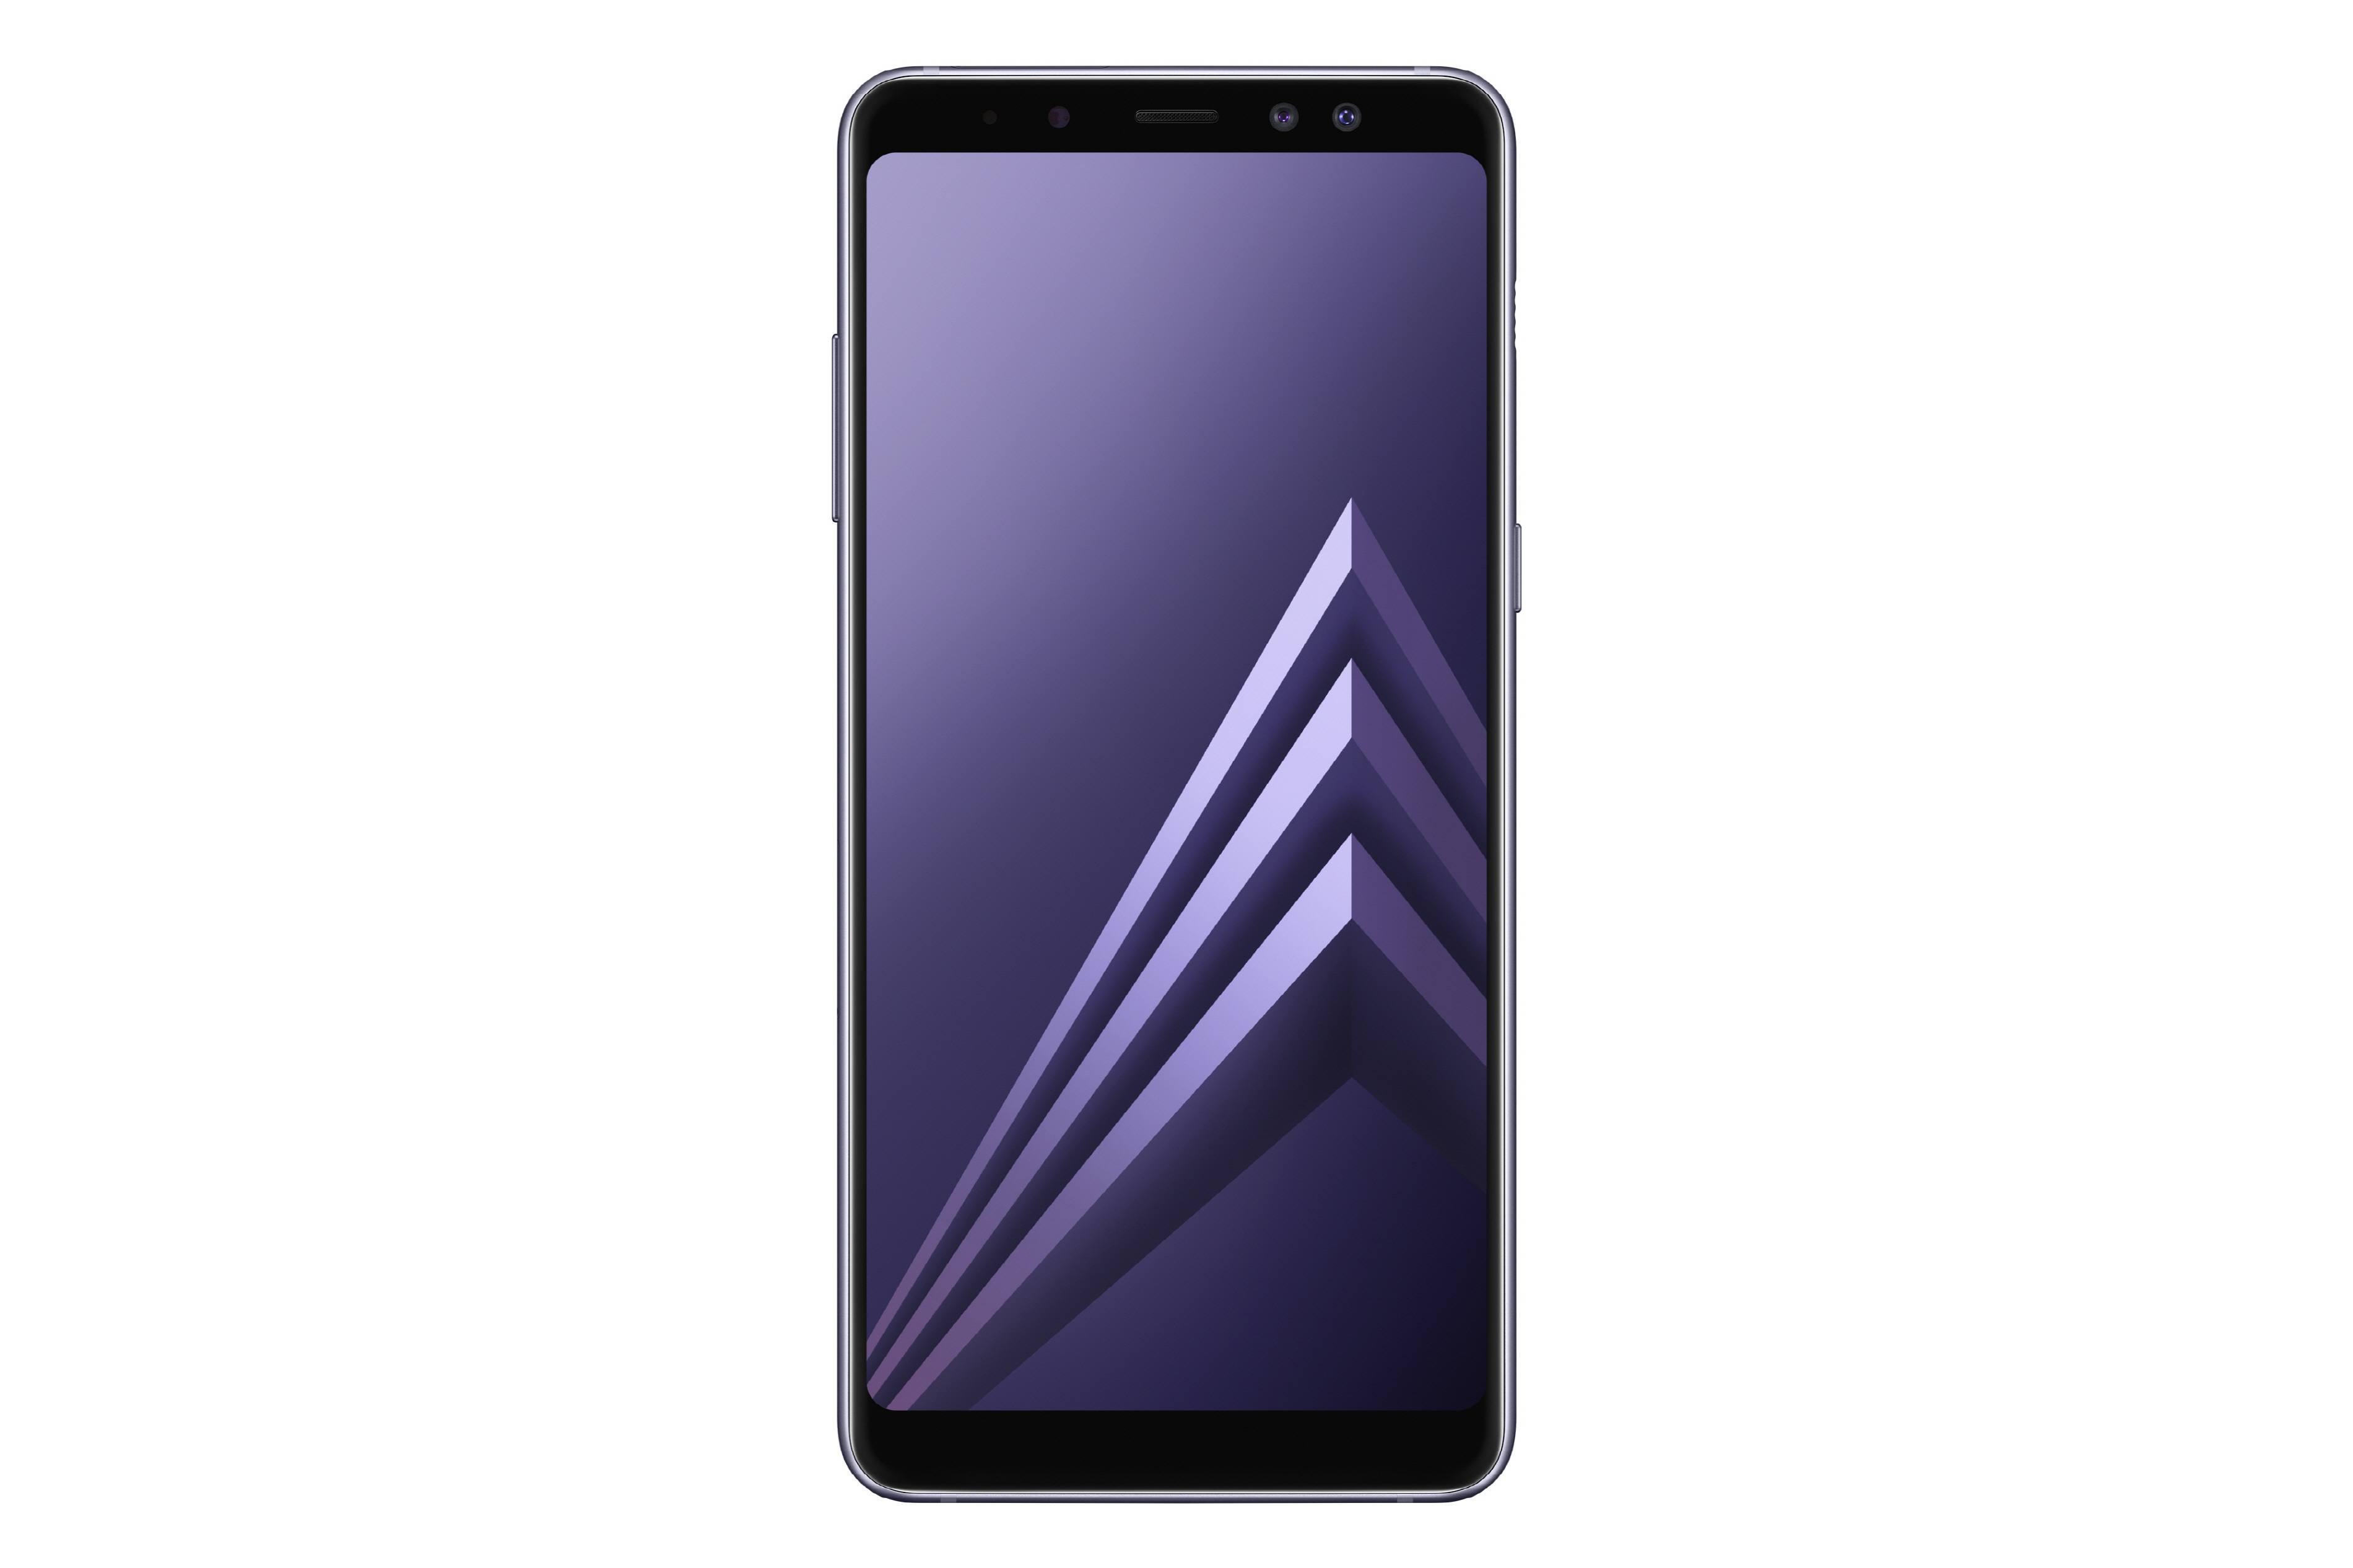 2da3fc14abb309 Samsung Galaxy S8 smartphone, front view, in orchid grey color